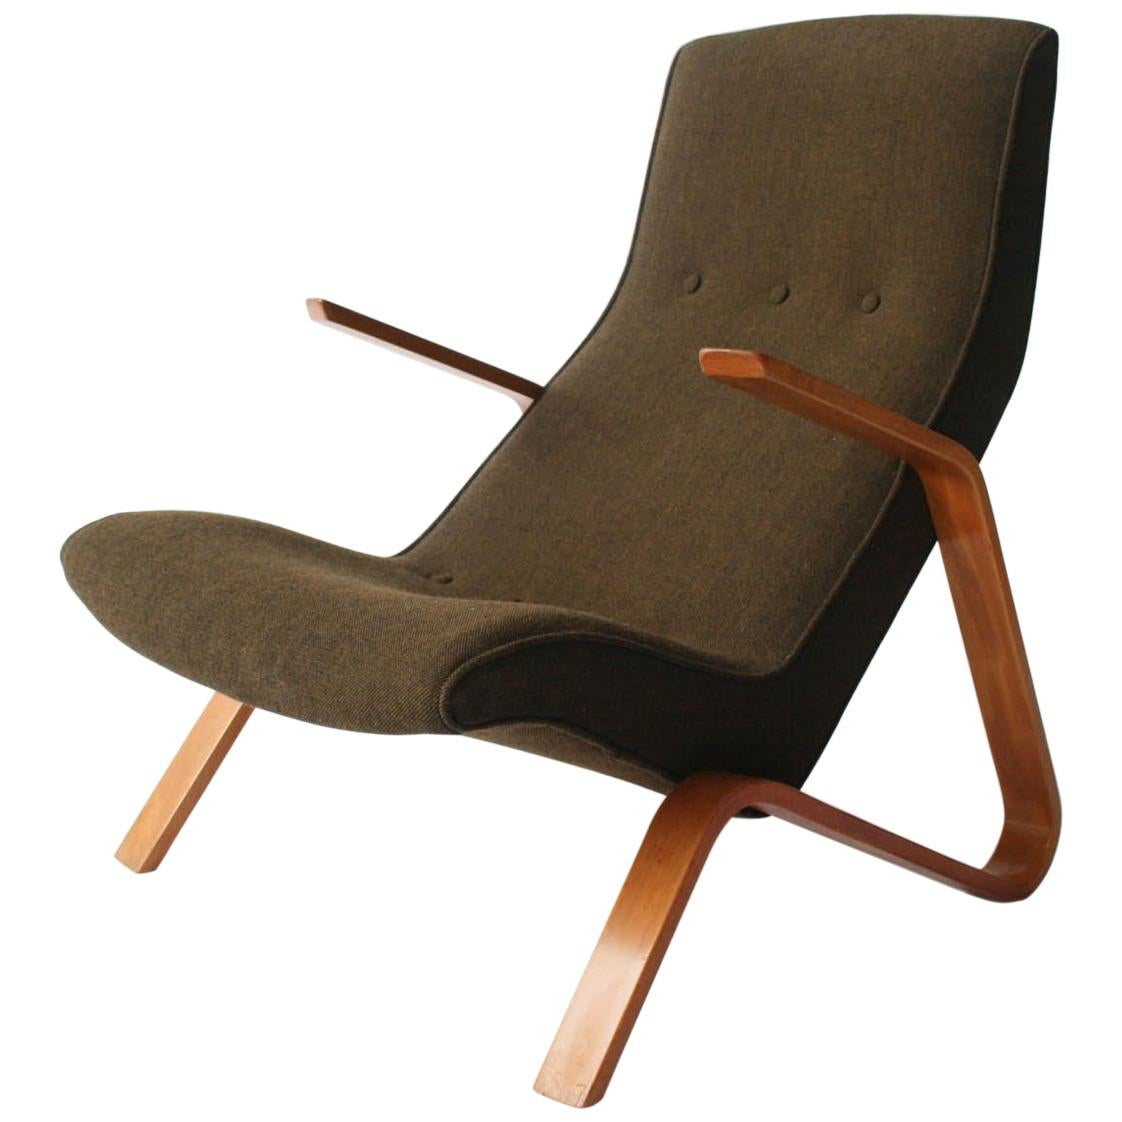 Ordinaire Vintage Grasshopper Lounge Chair By Eero Saarinen For Knoll